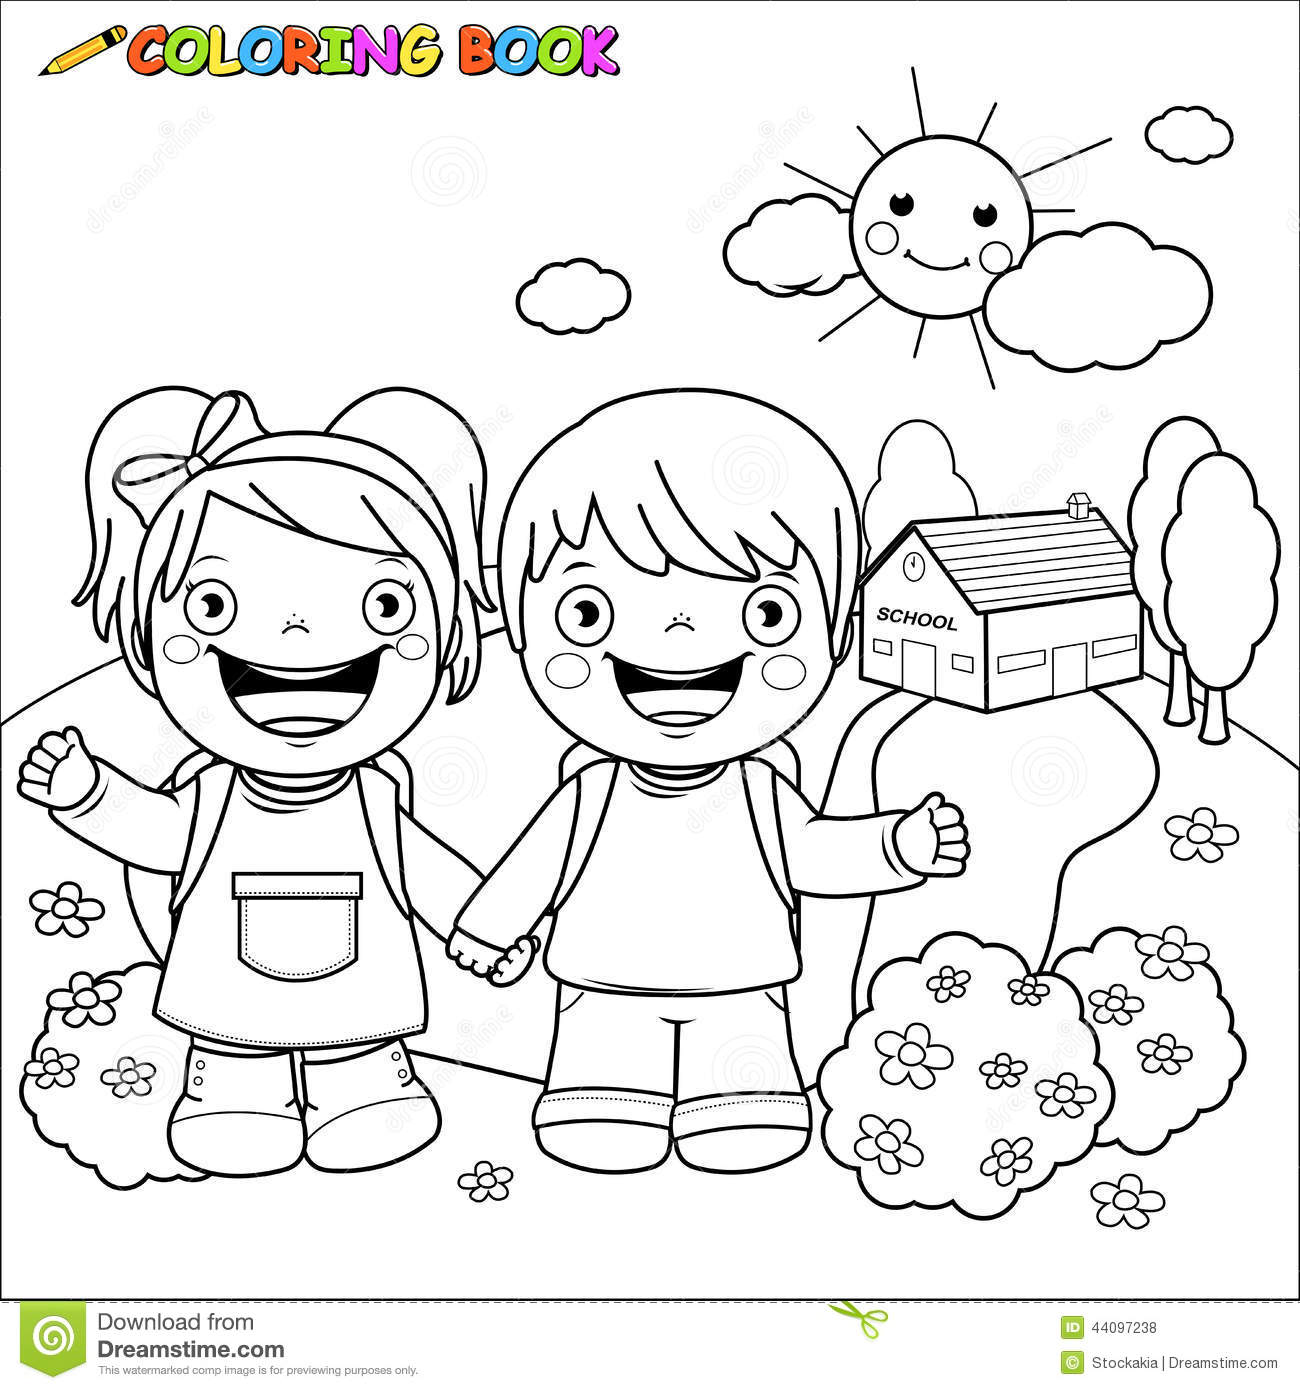 Coloring book school - Black Book Boy Coloring